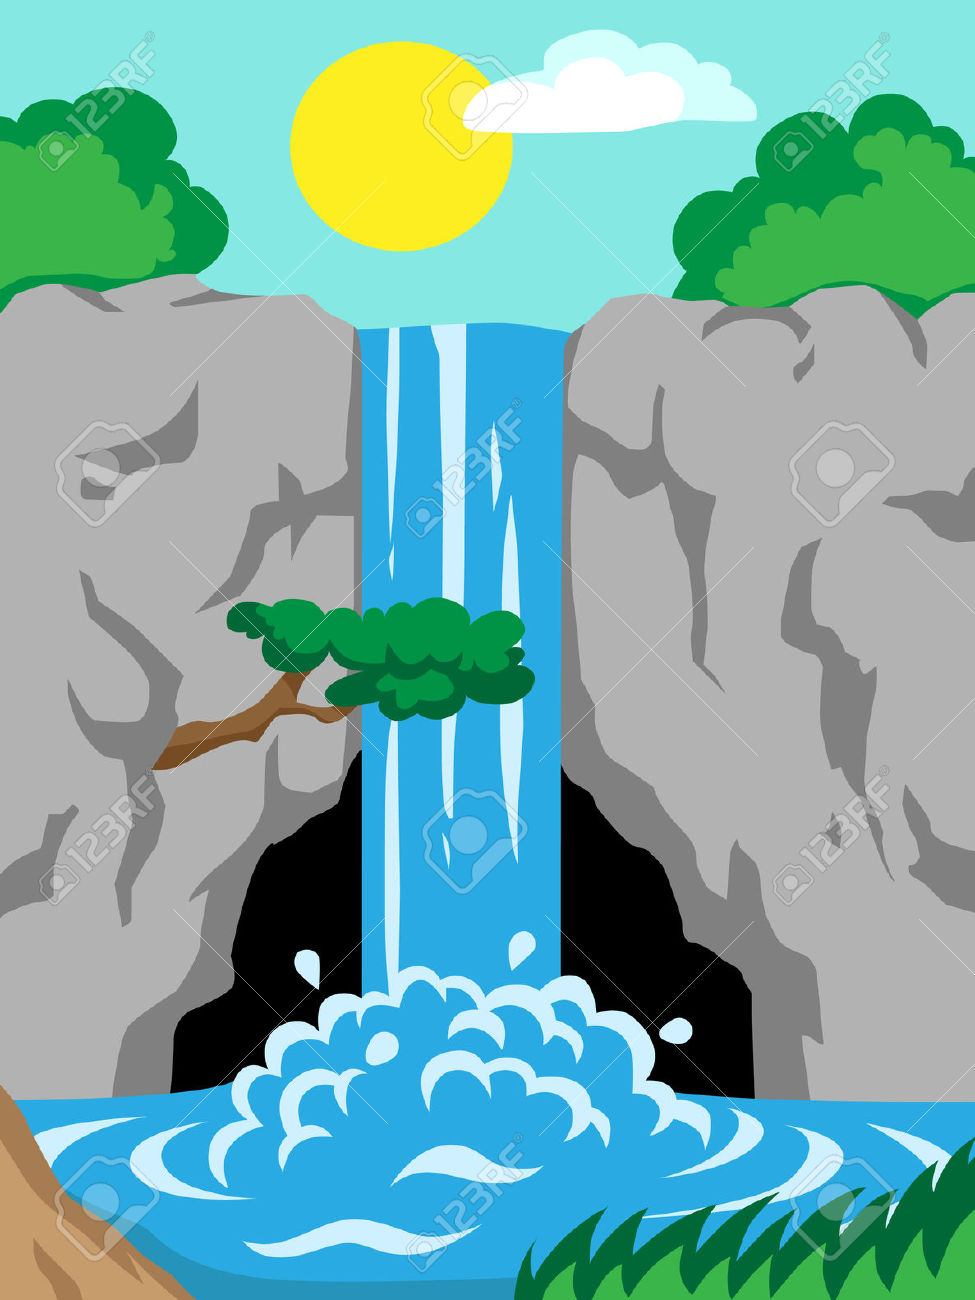 Waterfall clipart easy. Cartoon drawing a simple